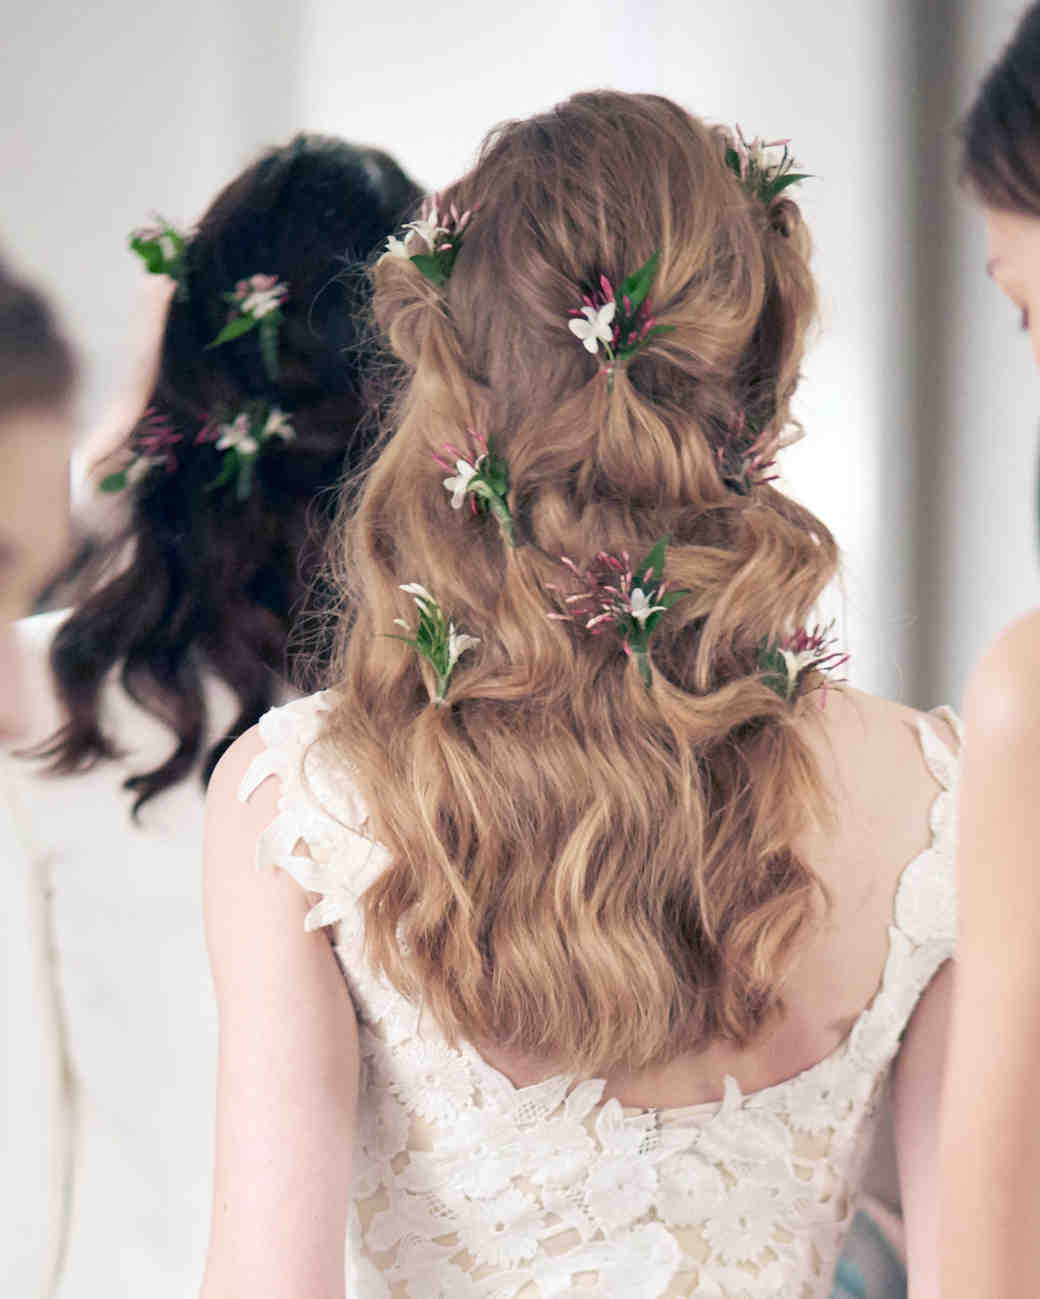 Wedding Hairstyle Photos: 96 Fun Facts About Your Favorite Bridal Designers